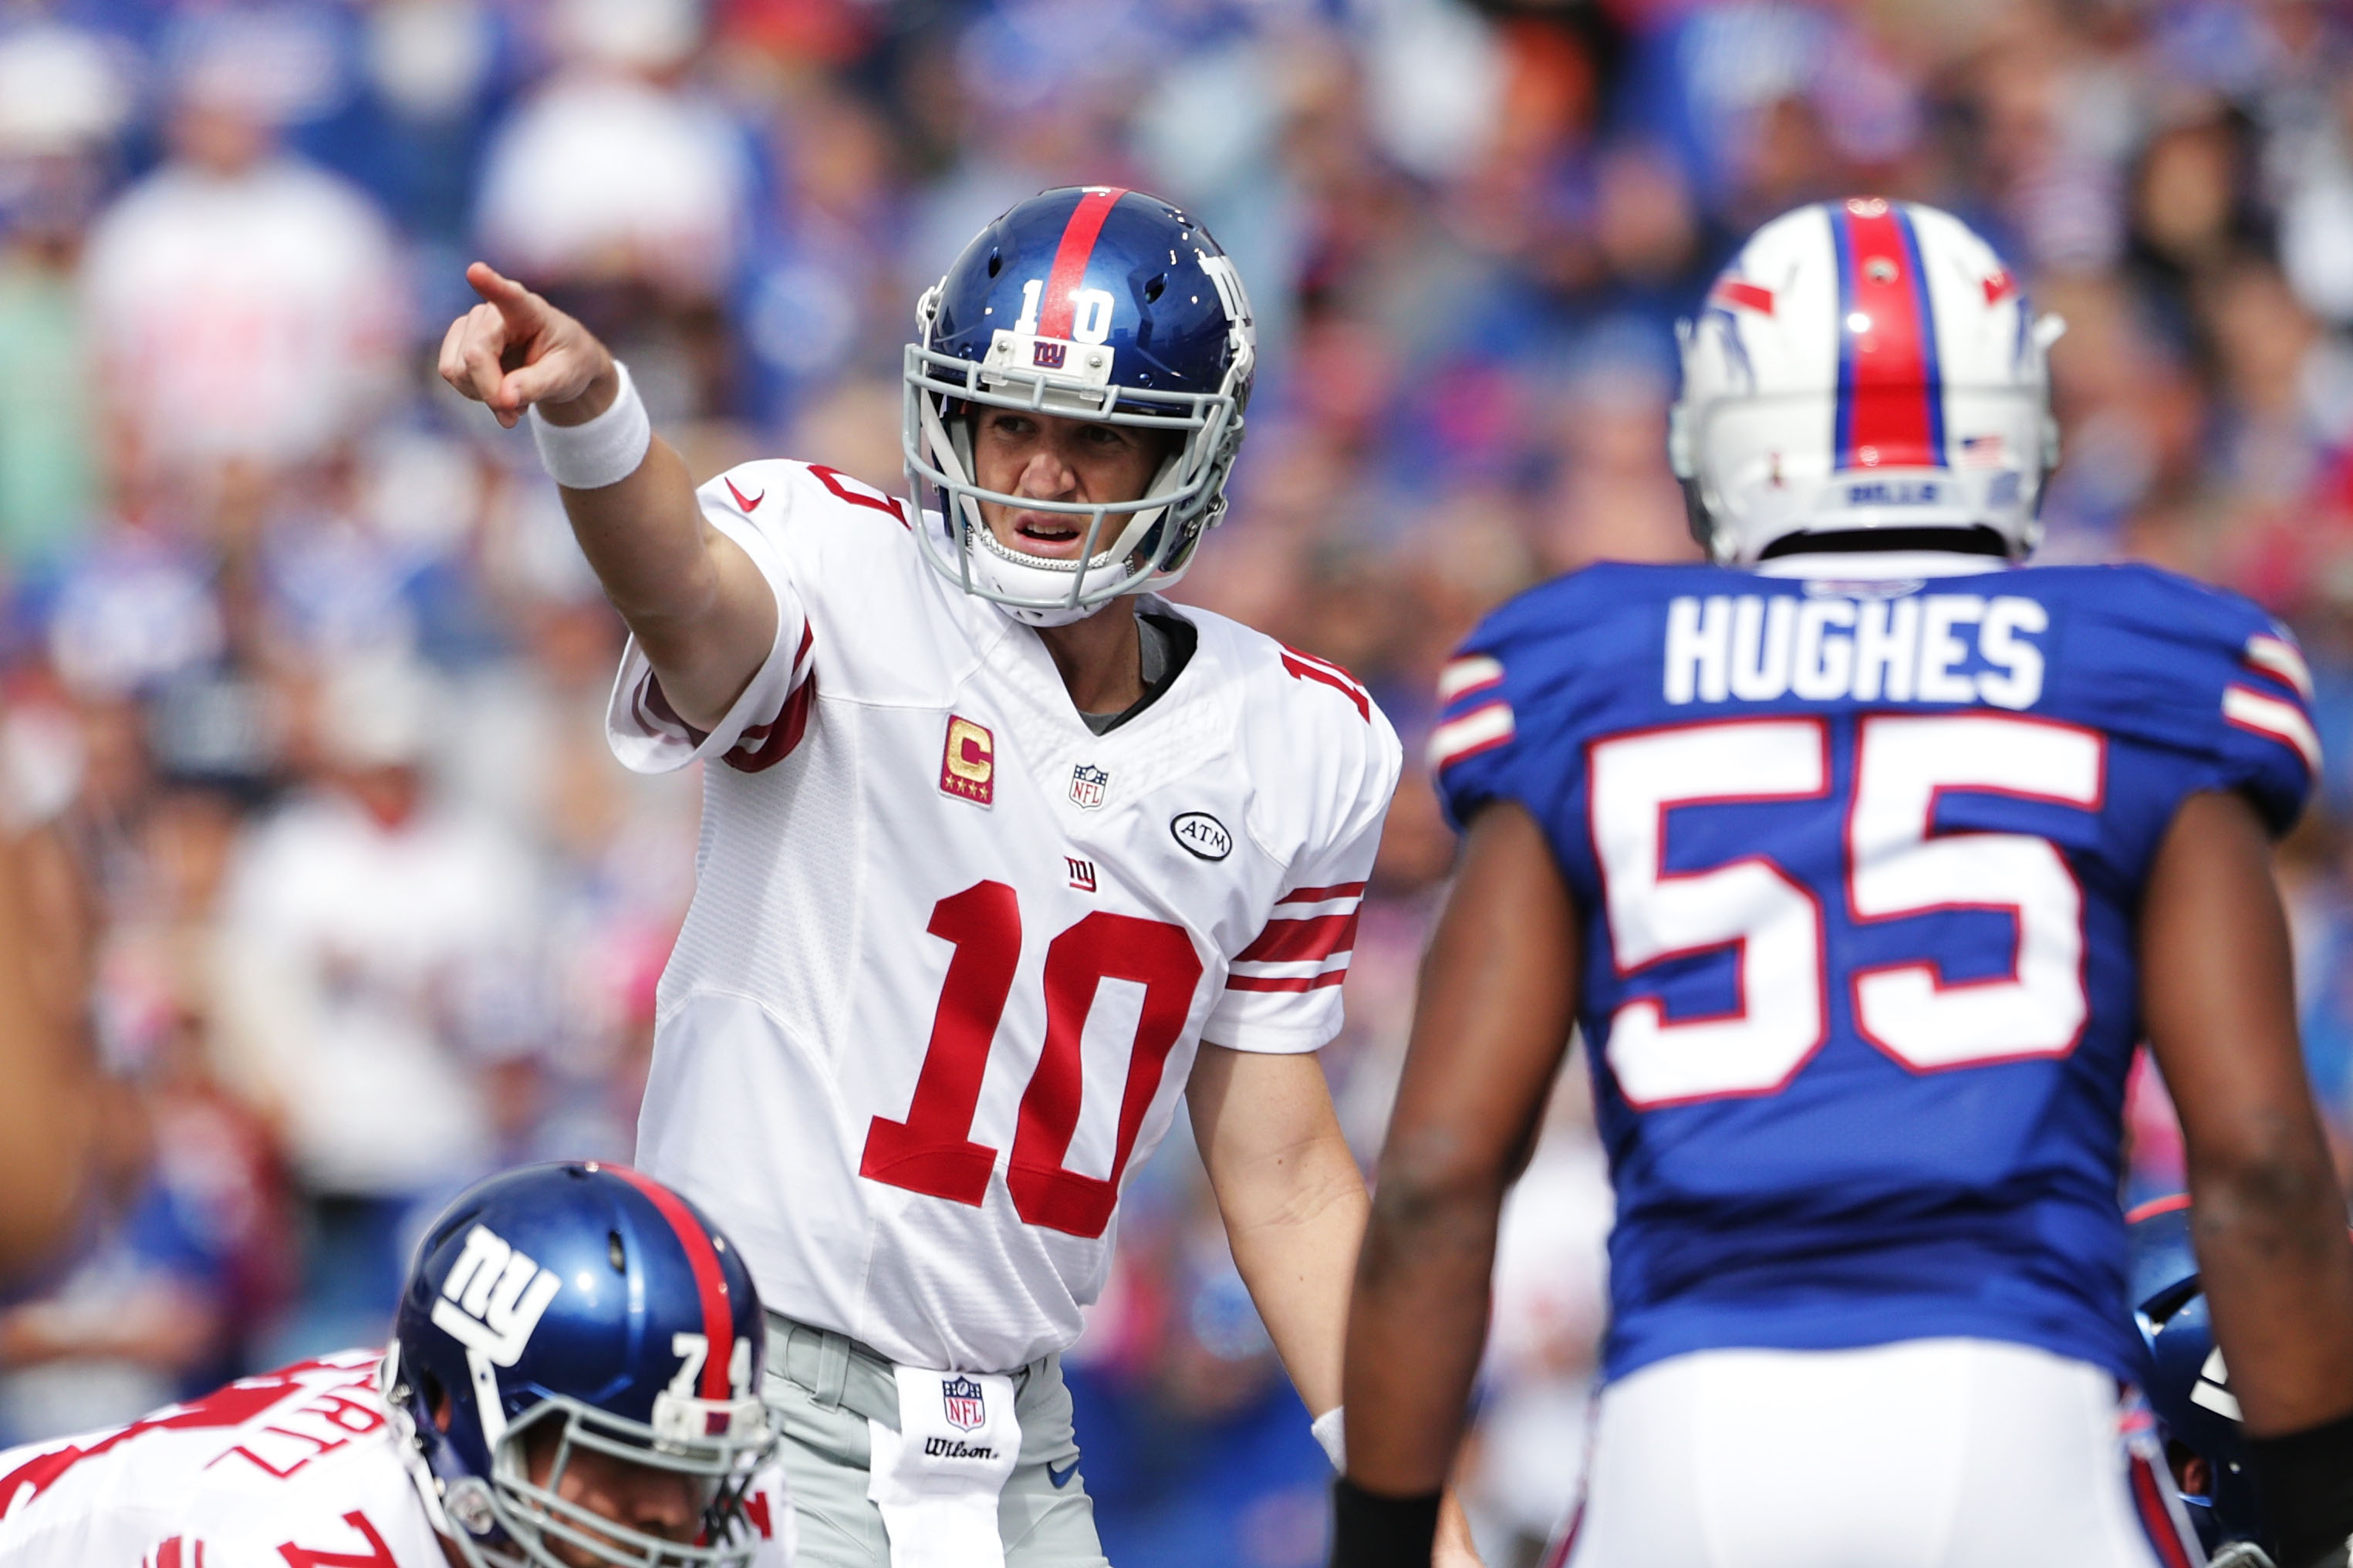 Is the needle pointing up or down for the Giants?